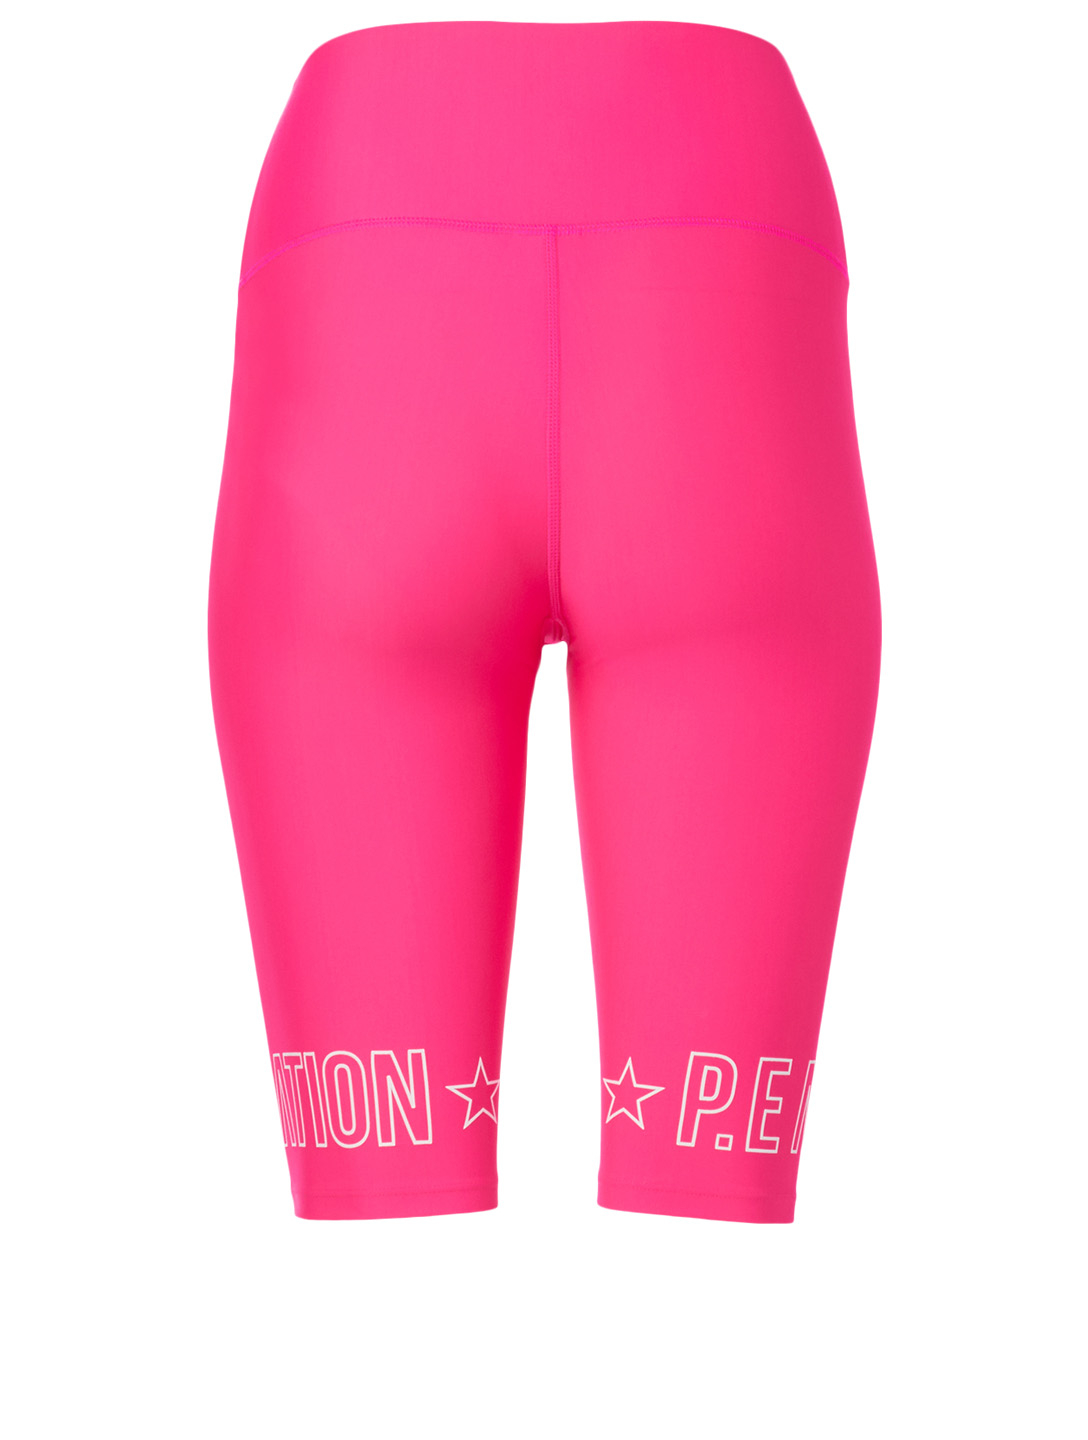 PE NATION Swish Bike Shorts Women's Pink